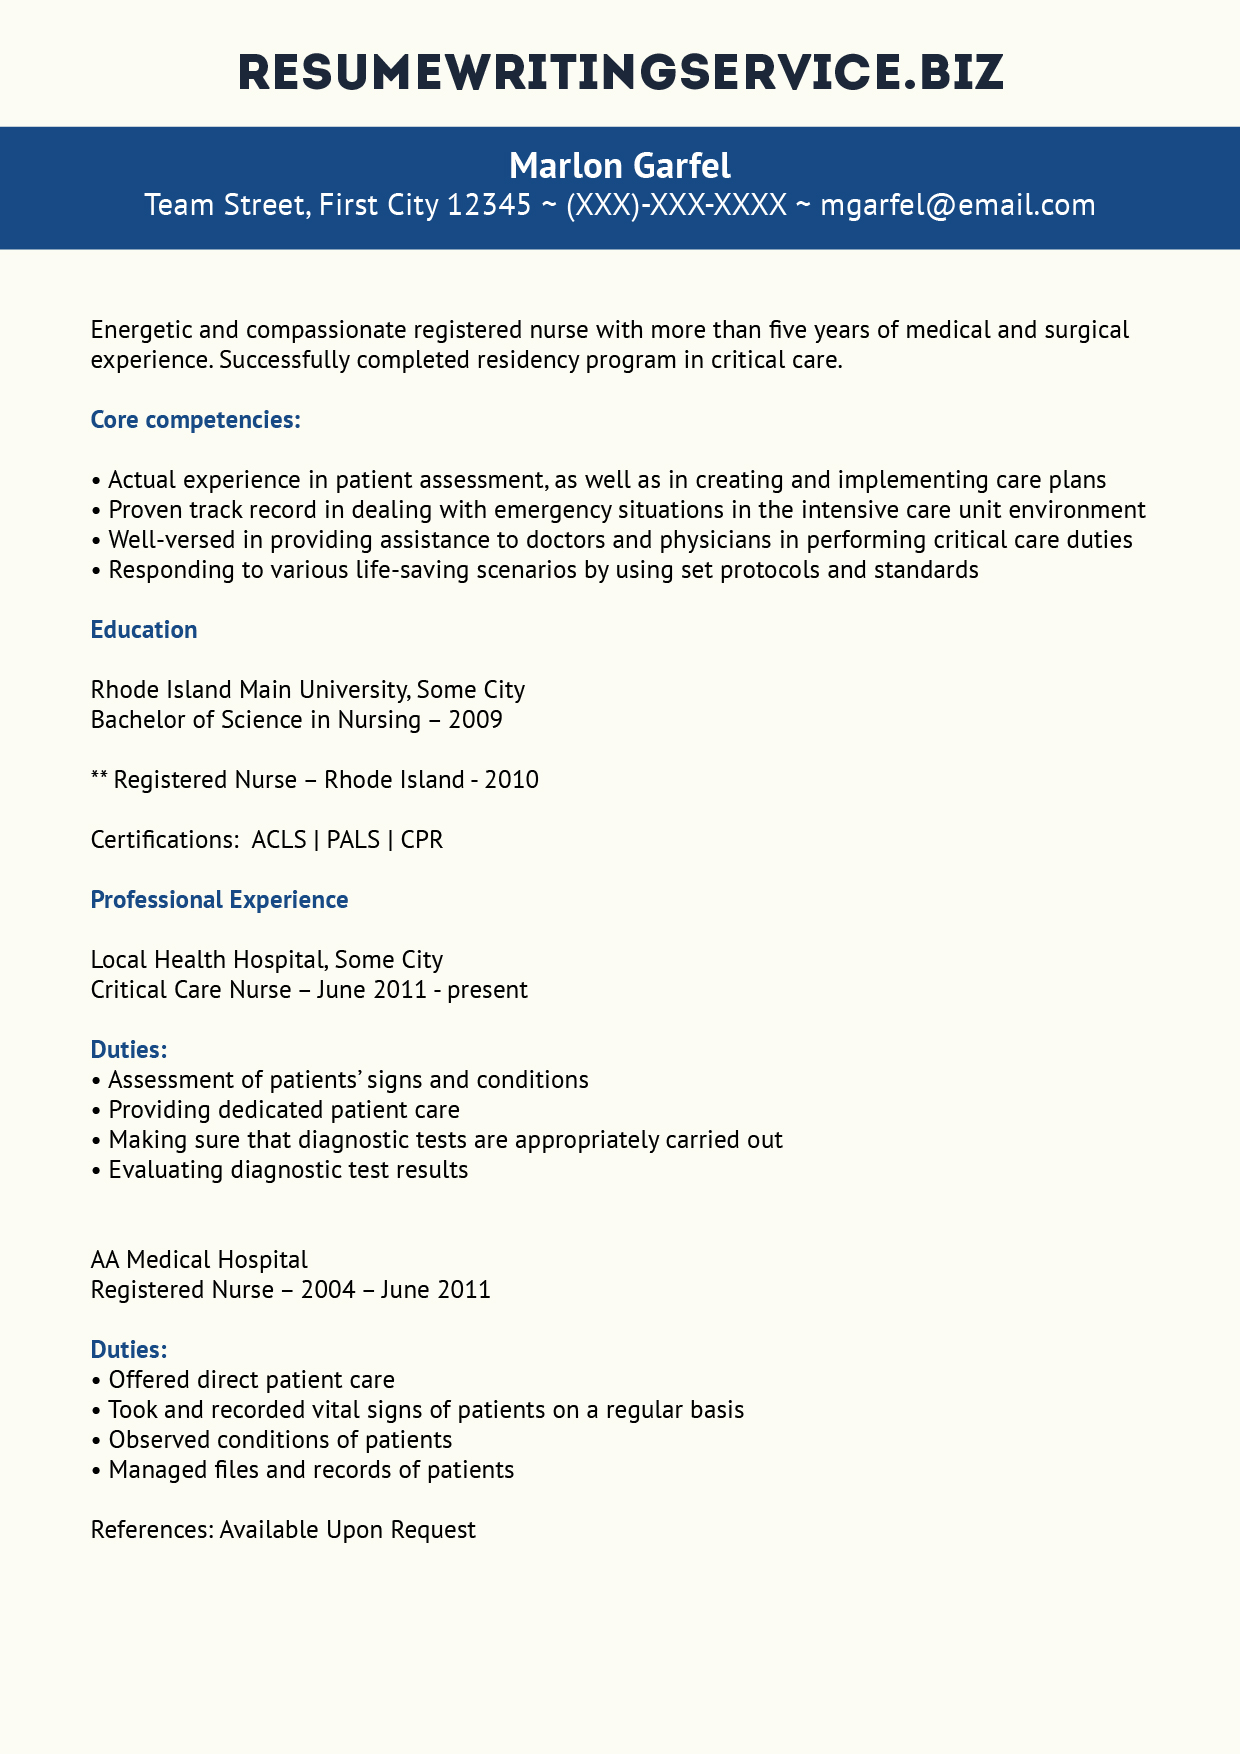 Quality Critical Care Nurse Resume Resume Writing Service